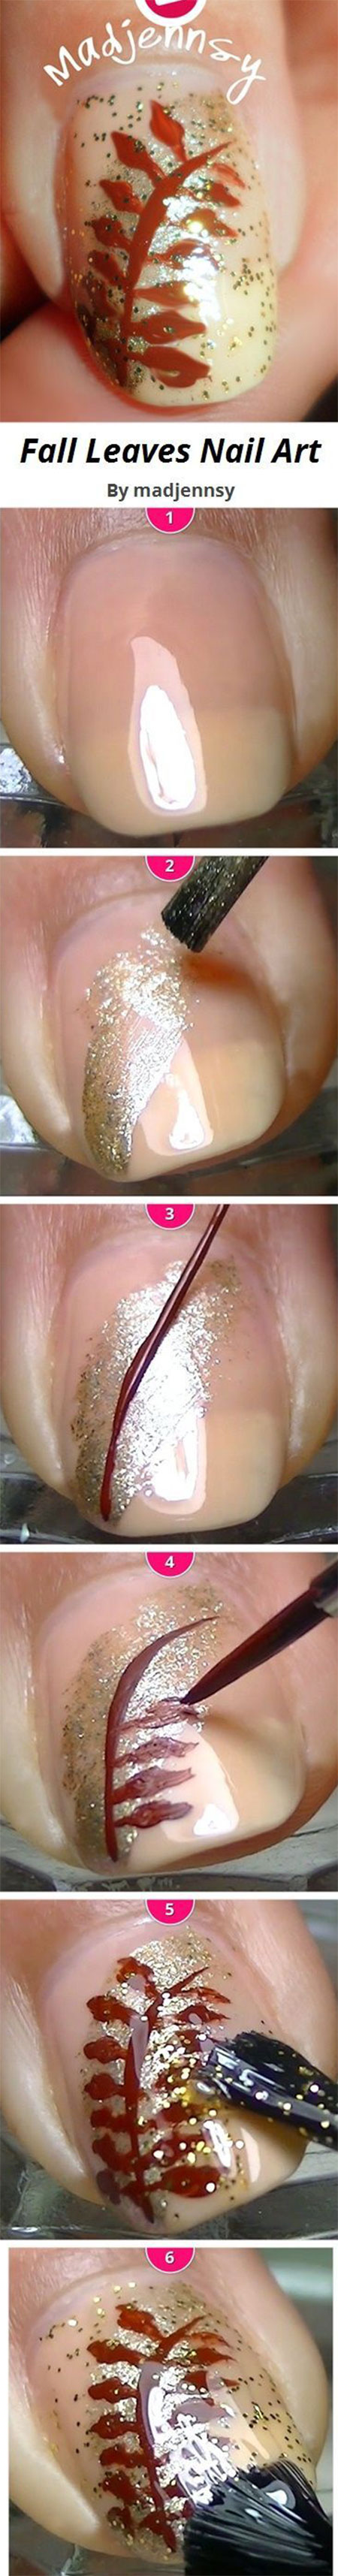 easy-simple-autumn-nail-art-tutorials-for-beginners-2016-9